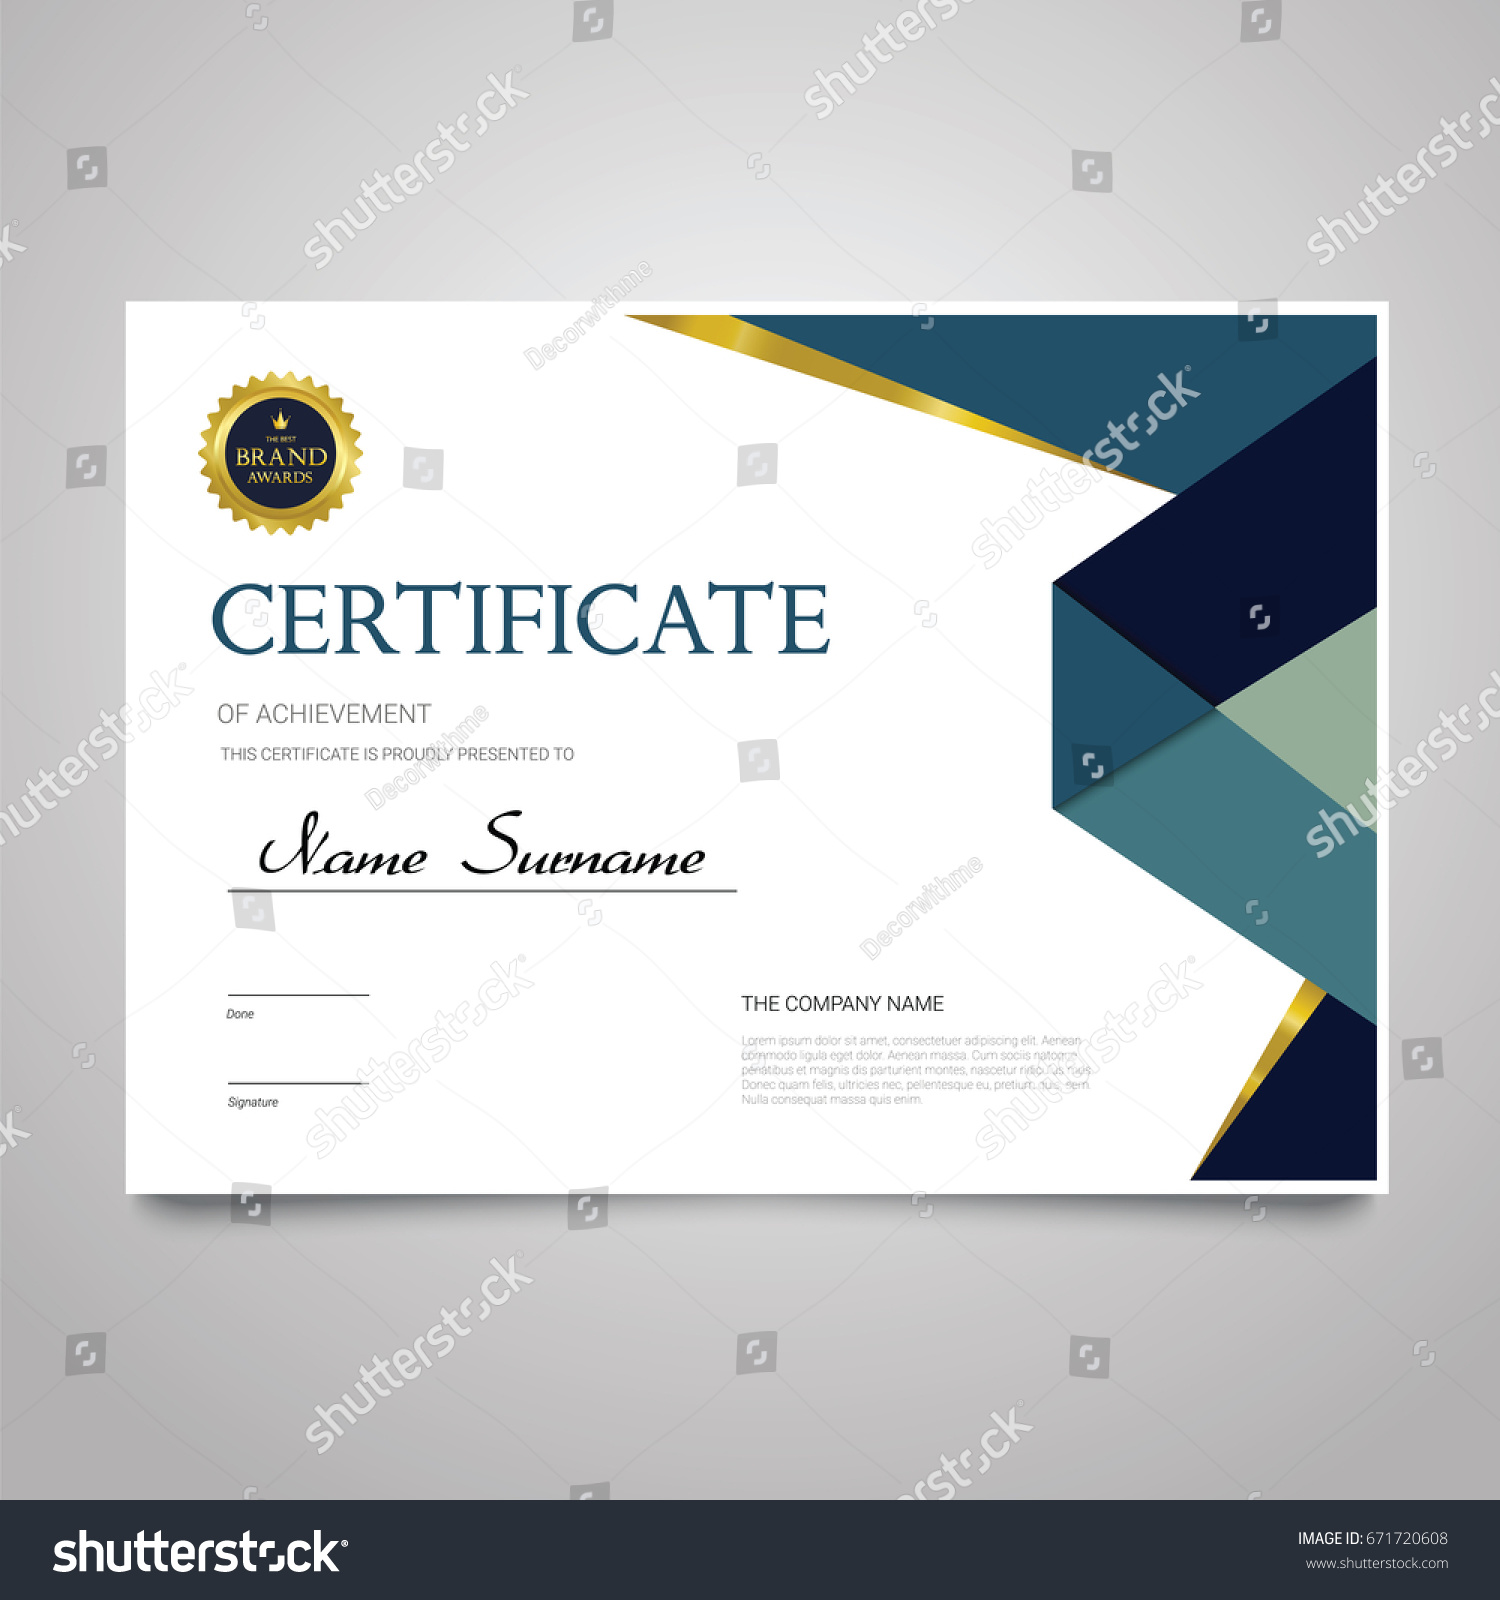 Duplicate certificate template edit and publish it oukasfo duplicate certificate template edit and publish it yelopaper Gallery